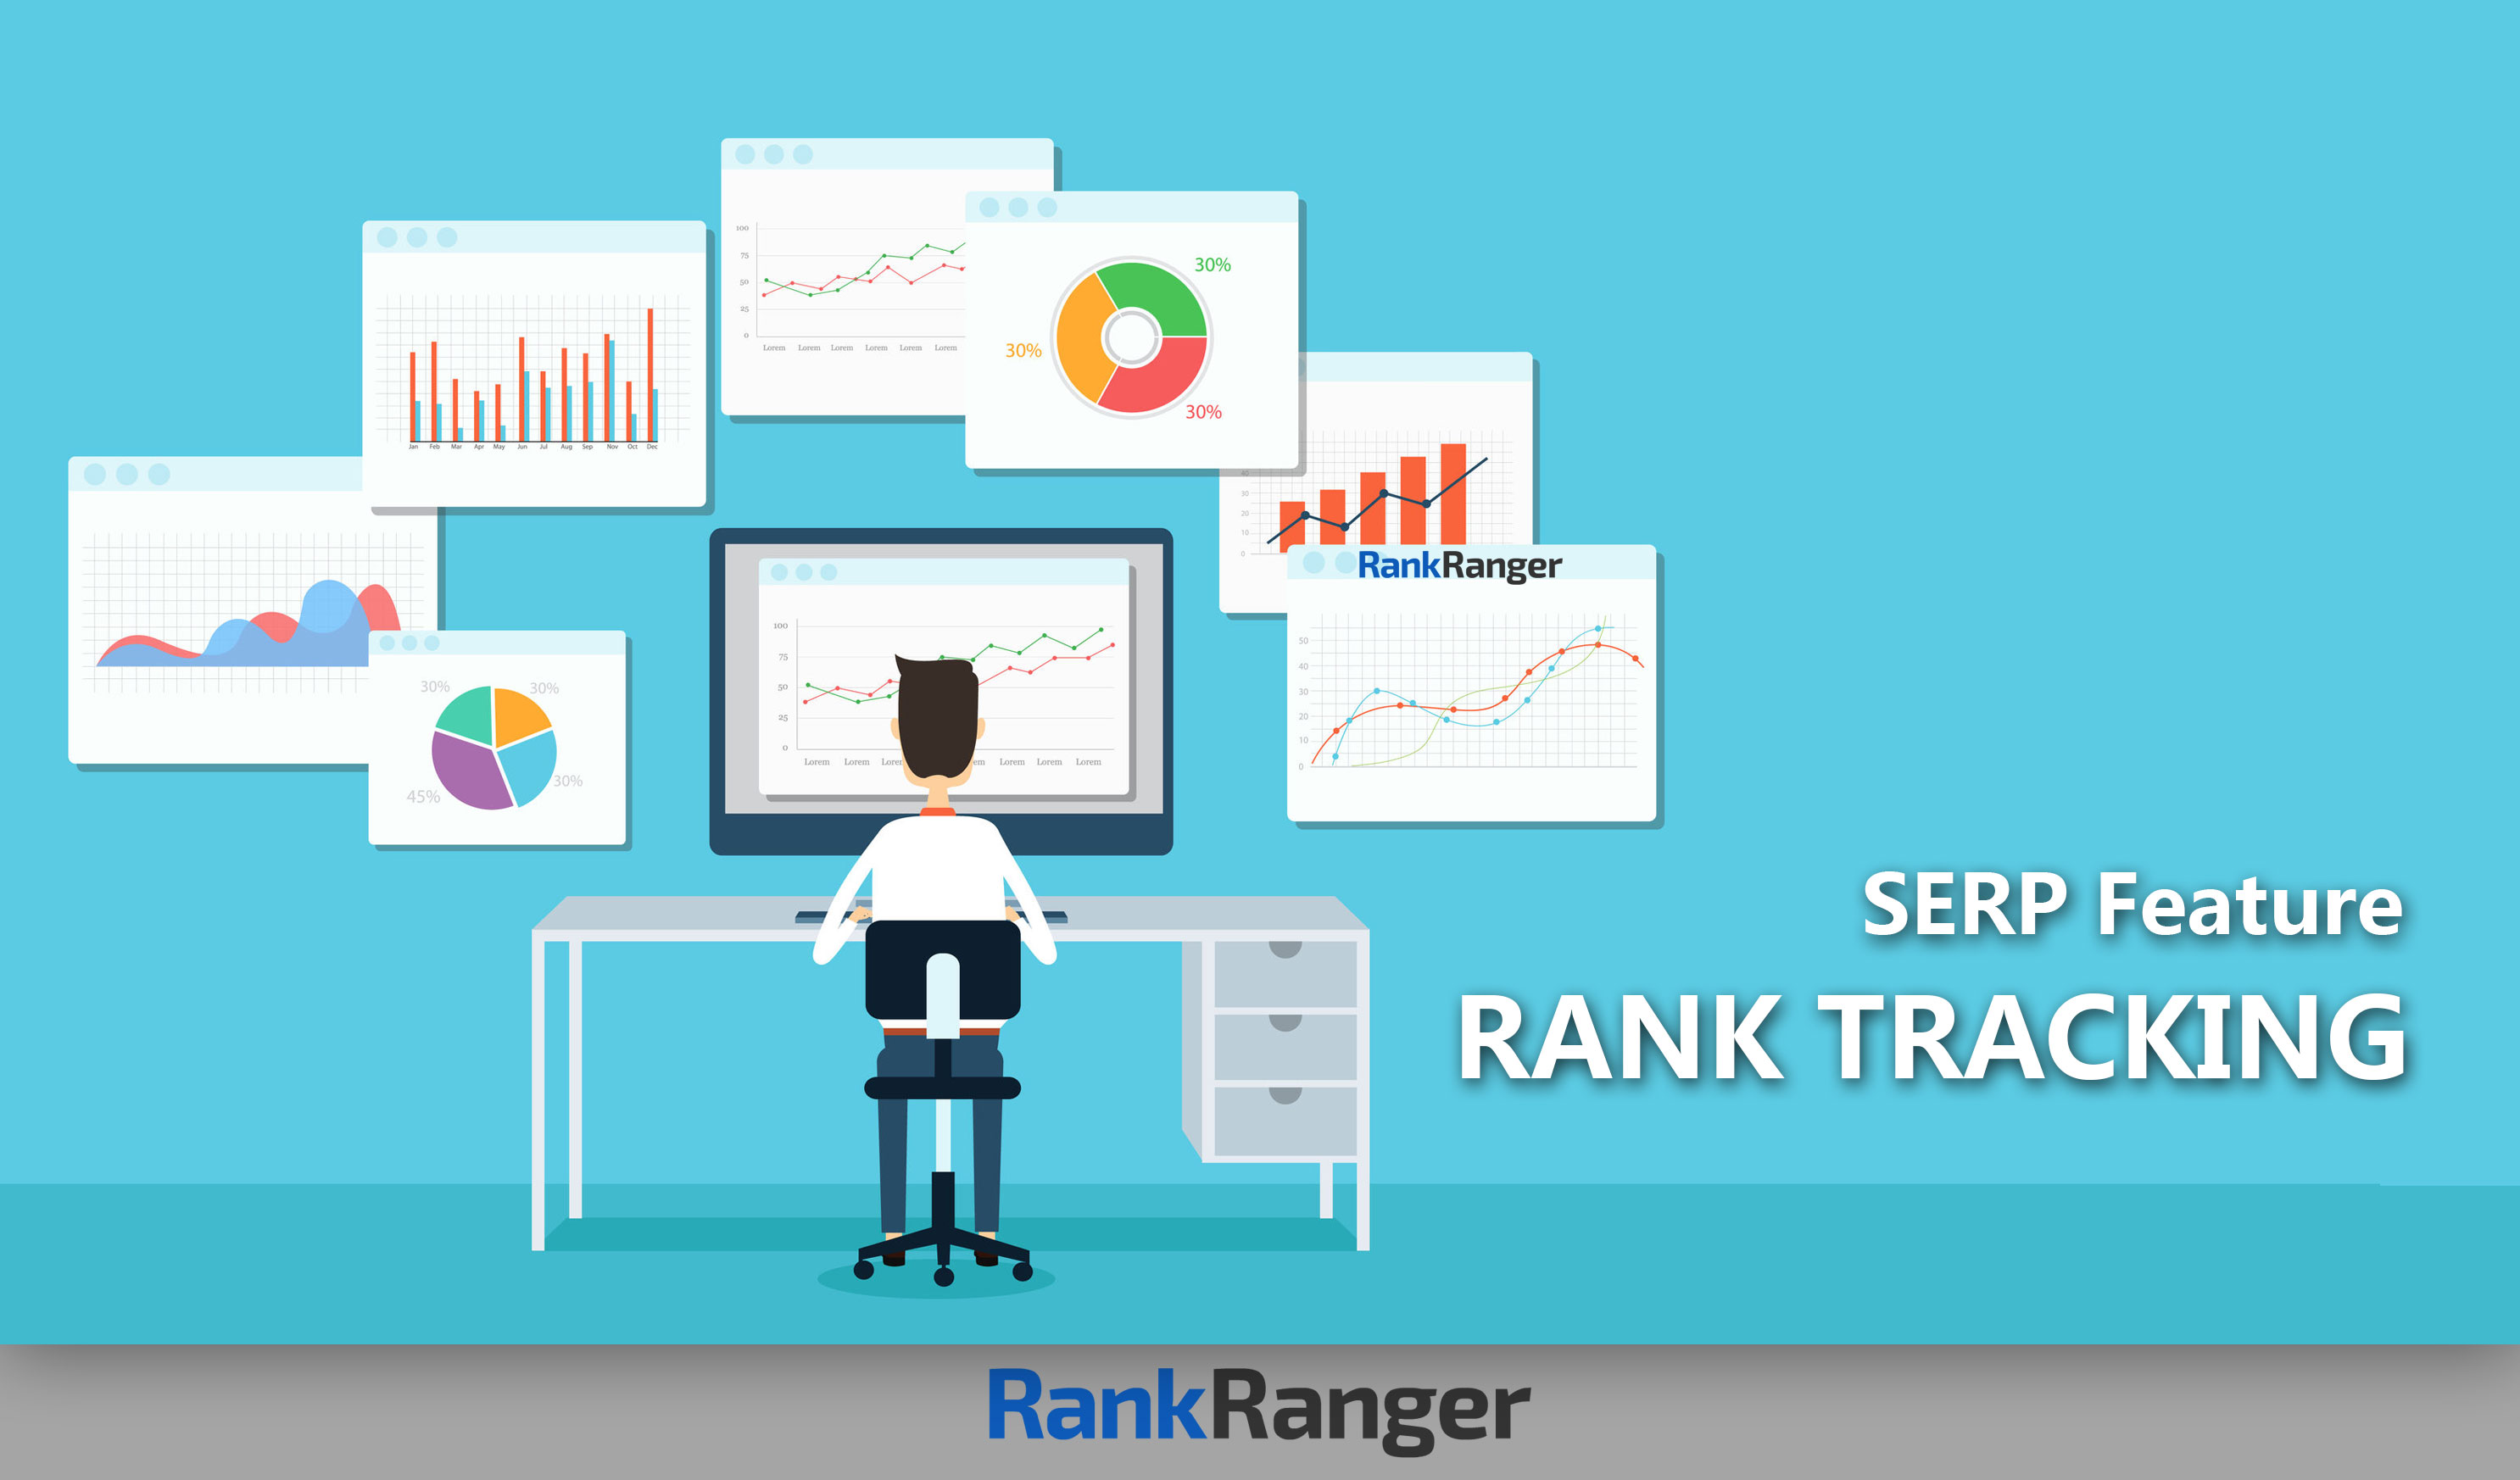 SERP feature rank tracking